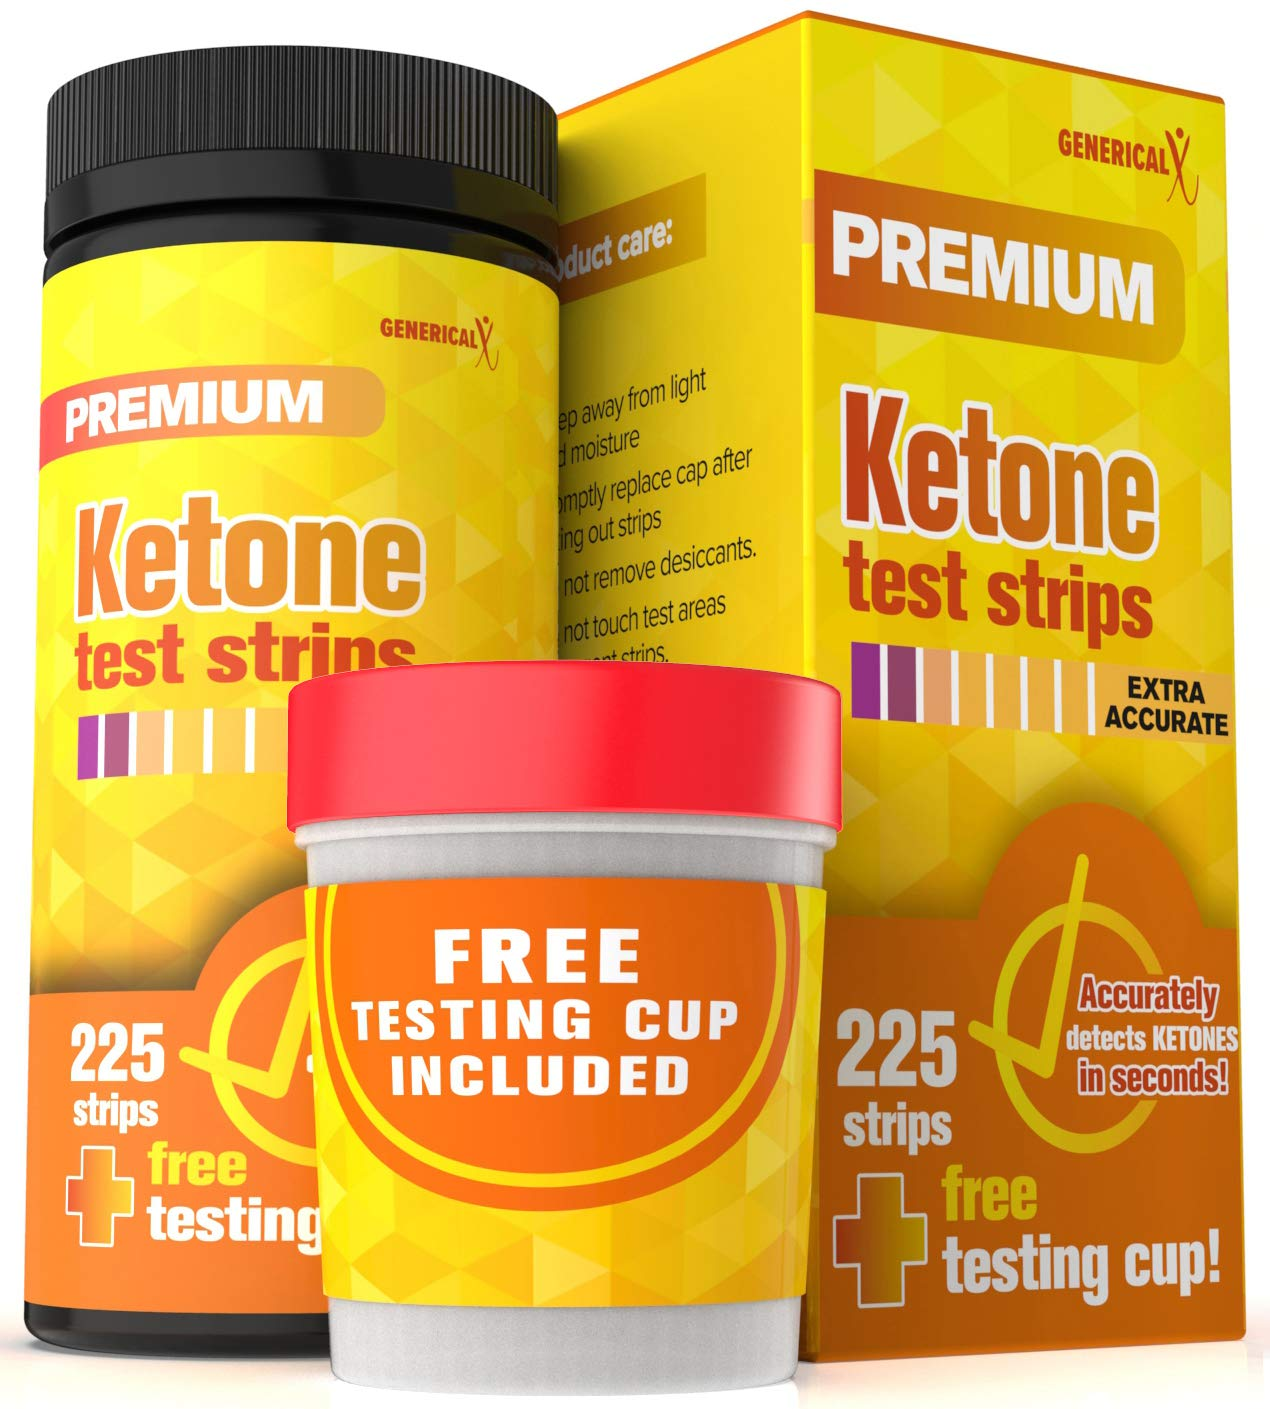 Ketone Urine Testing Kit (225 STRIPS + FREE TESTING CUP) Test Ketosis Levels on Low Carb Ketogenic and Atkins Diet Urinalysis Tester Instant and Accurate Measurements by Ketone Testing Kit by Generical X